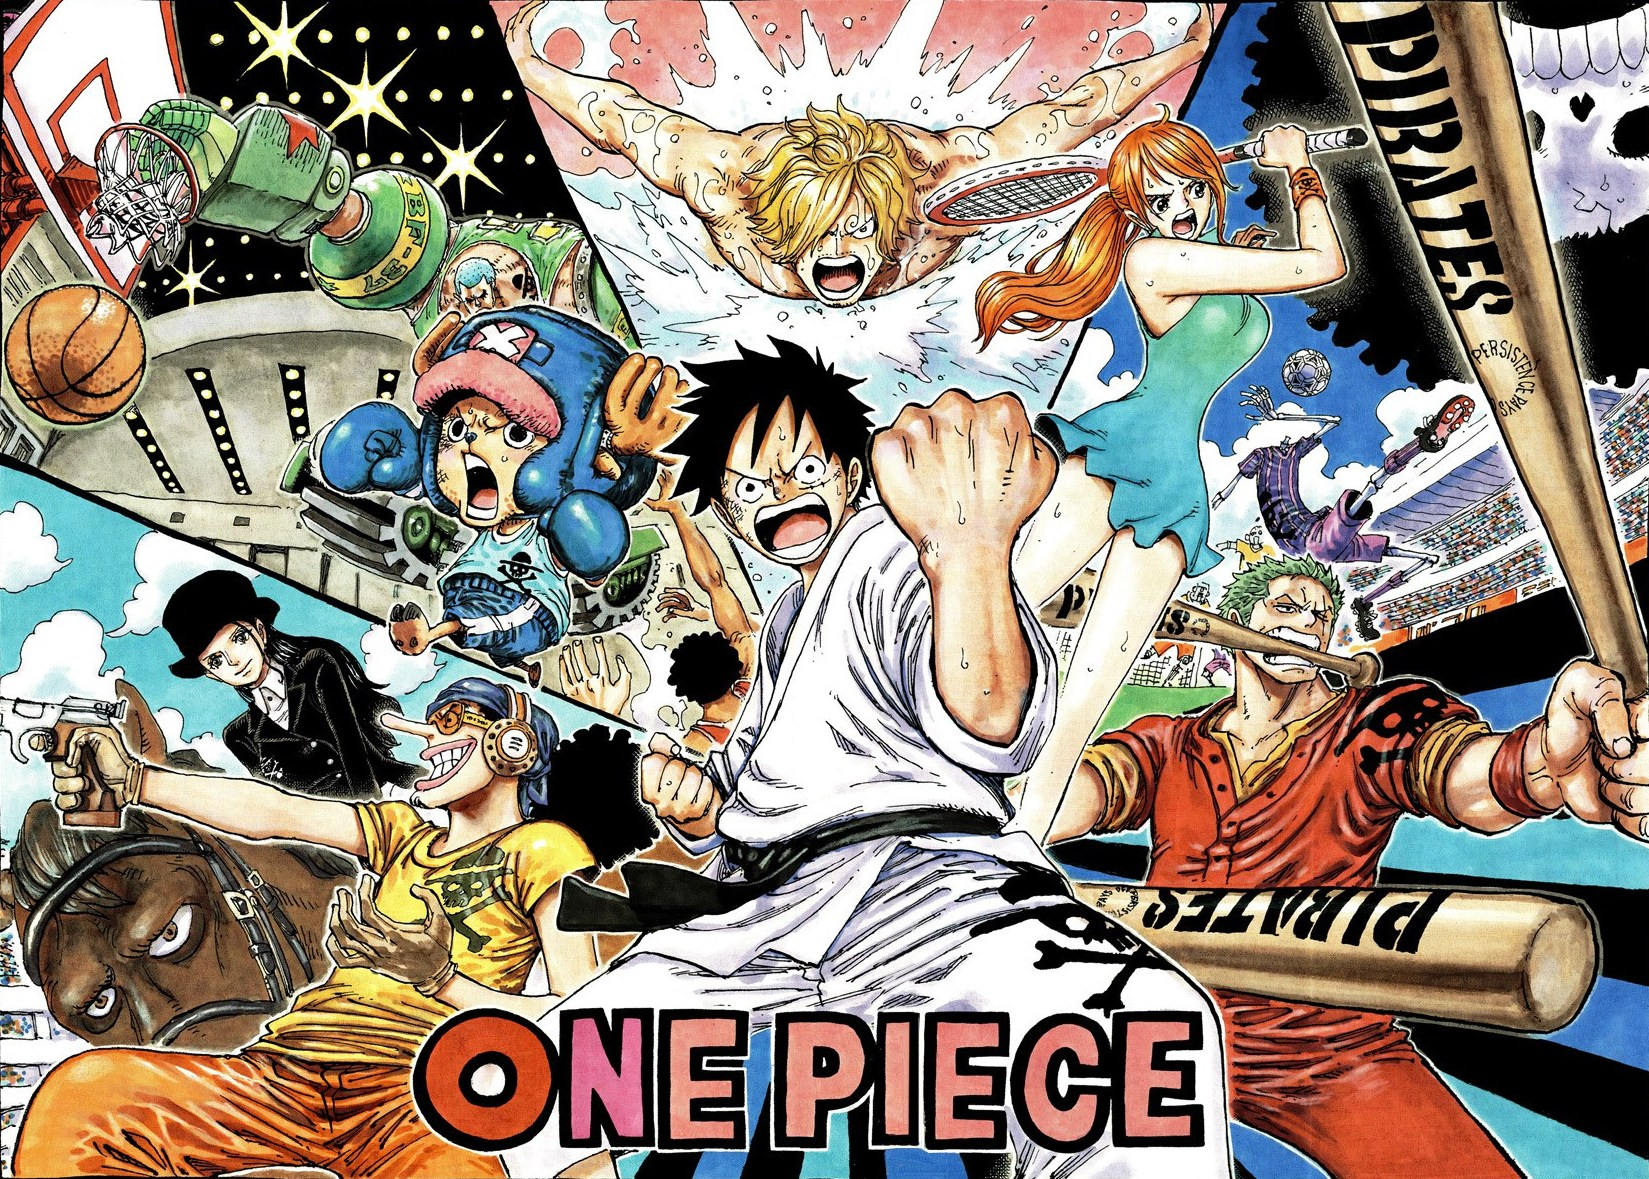 One Piece Cover Pages 1717335 Hd Wallpaper